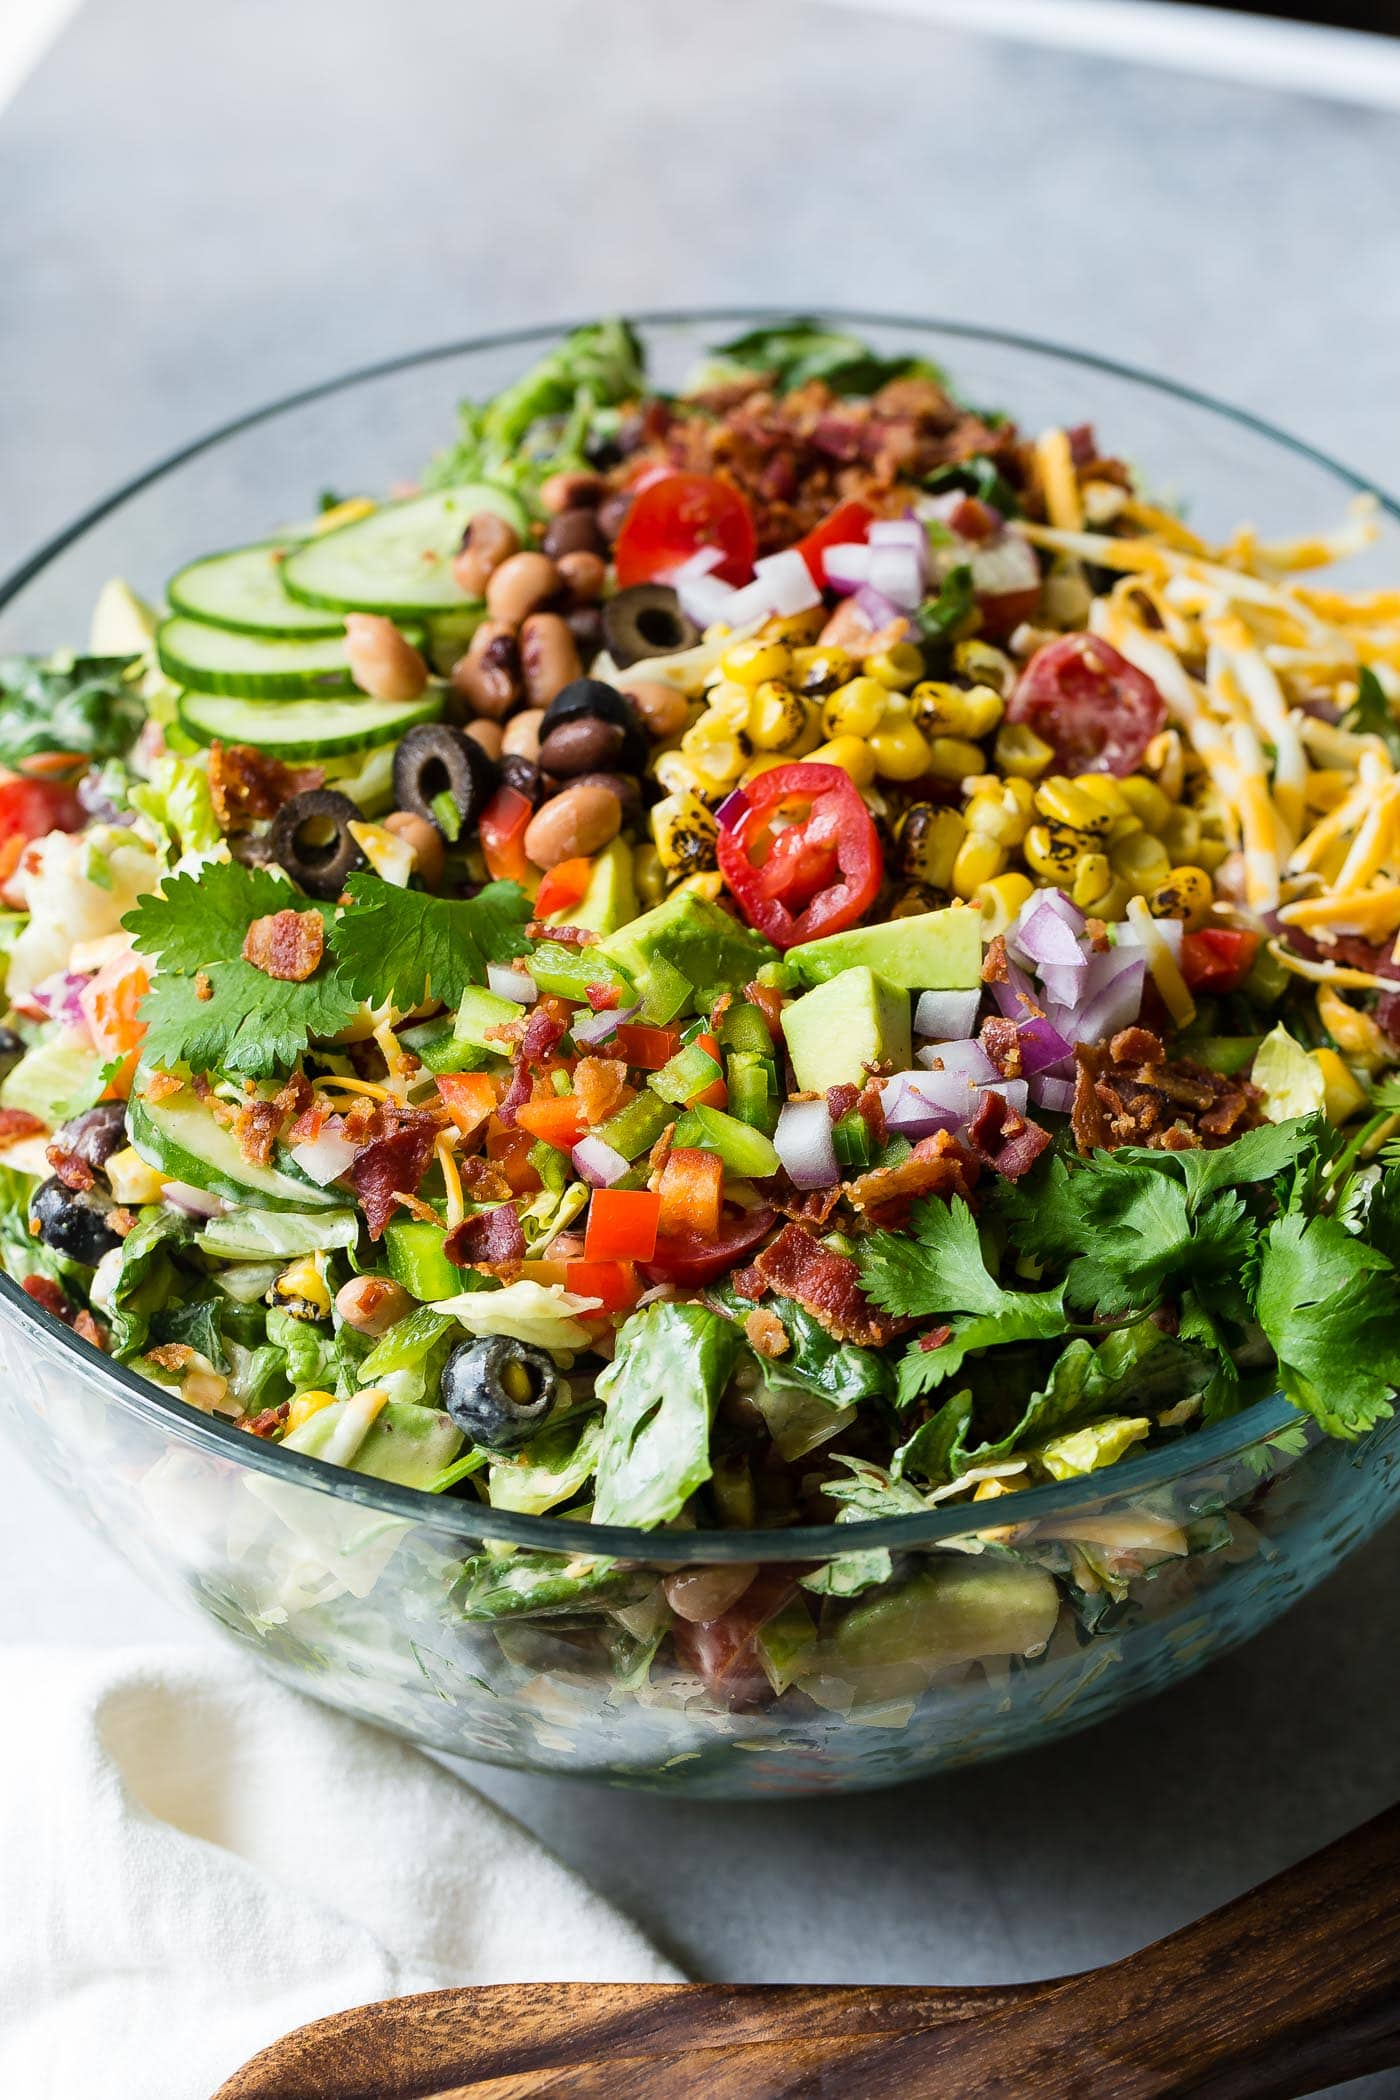 Cowboy salad that is all mixed up and ready to eat. There are sliced cucumbers, chopped tomatoes, chopped avocados, corn, beans, red onions, shredded cheese and green lettuce.